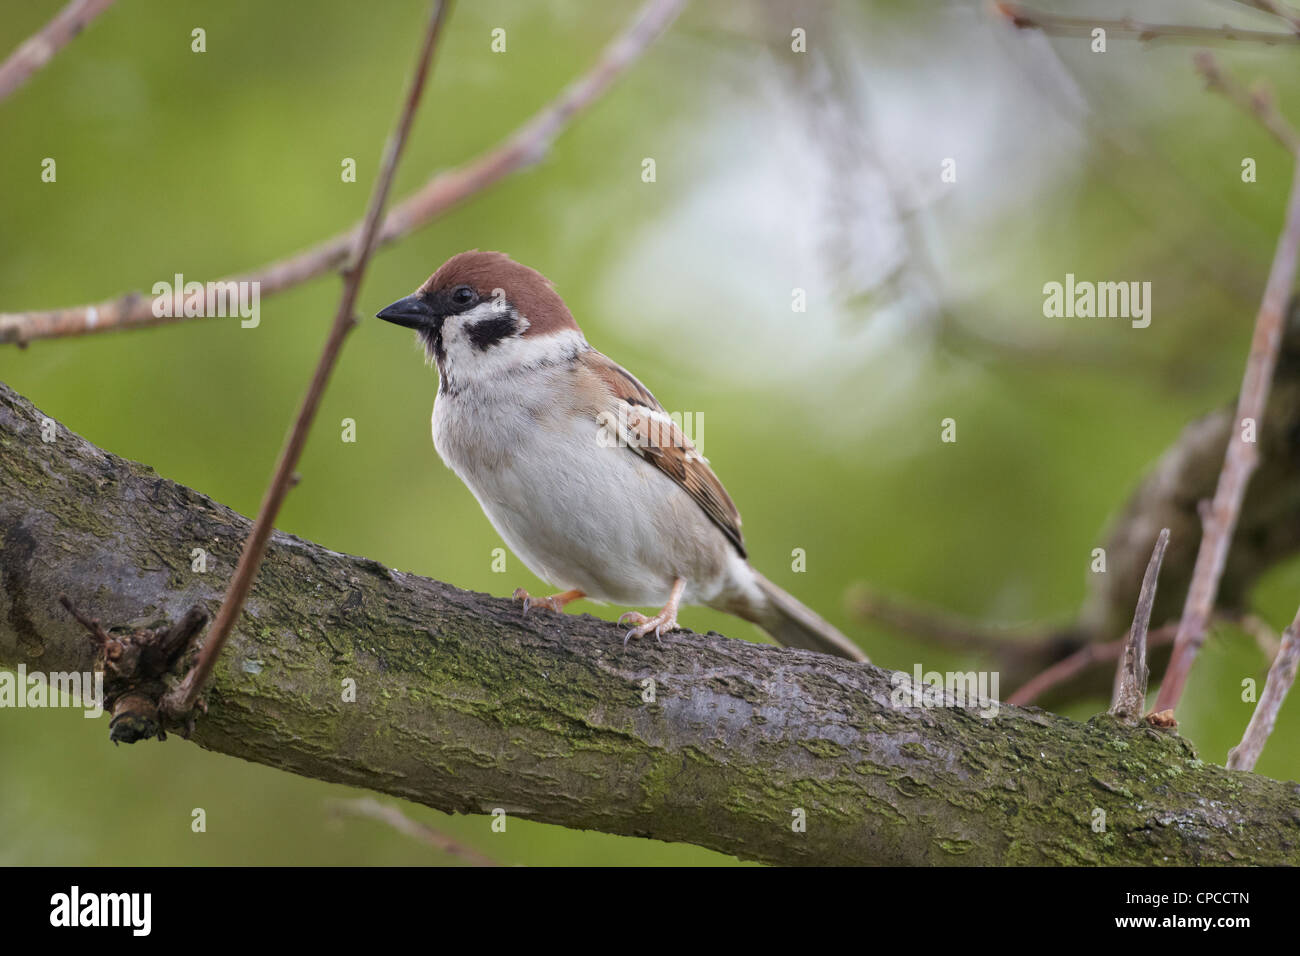 Eurasian Tree Sparrow, Passer montanus, on a branch, East Yorkshire, UK - Stock Image